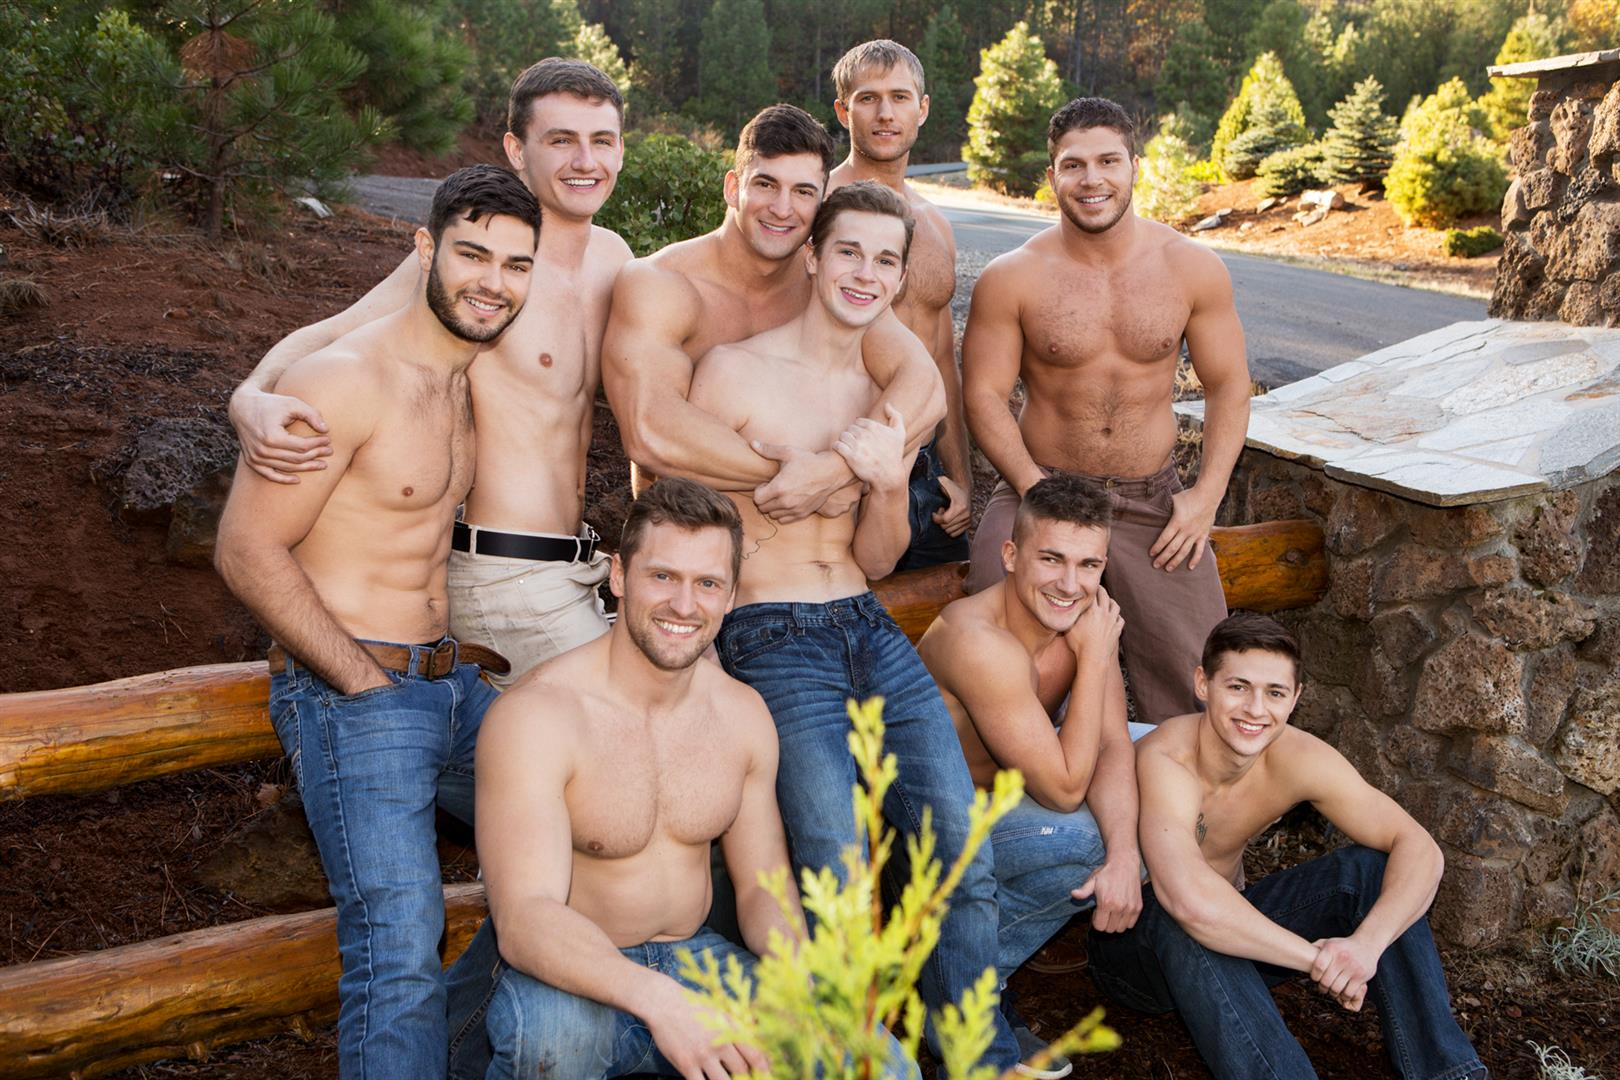 Sean-Cody-Winter-Getaway-Day-5-Big-Dick-Hunks-Fucking-Bareback-Amateur-Gay-Porn-04 Sean Cody Takes The Boys On A 8-Day Bareback Winter Getaway